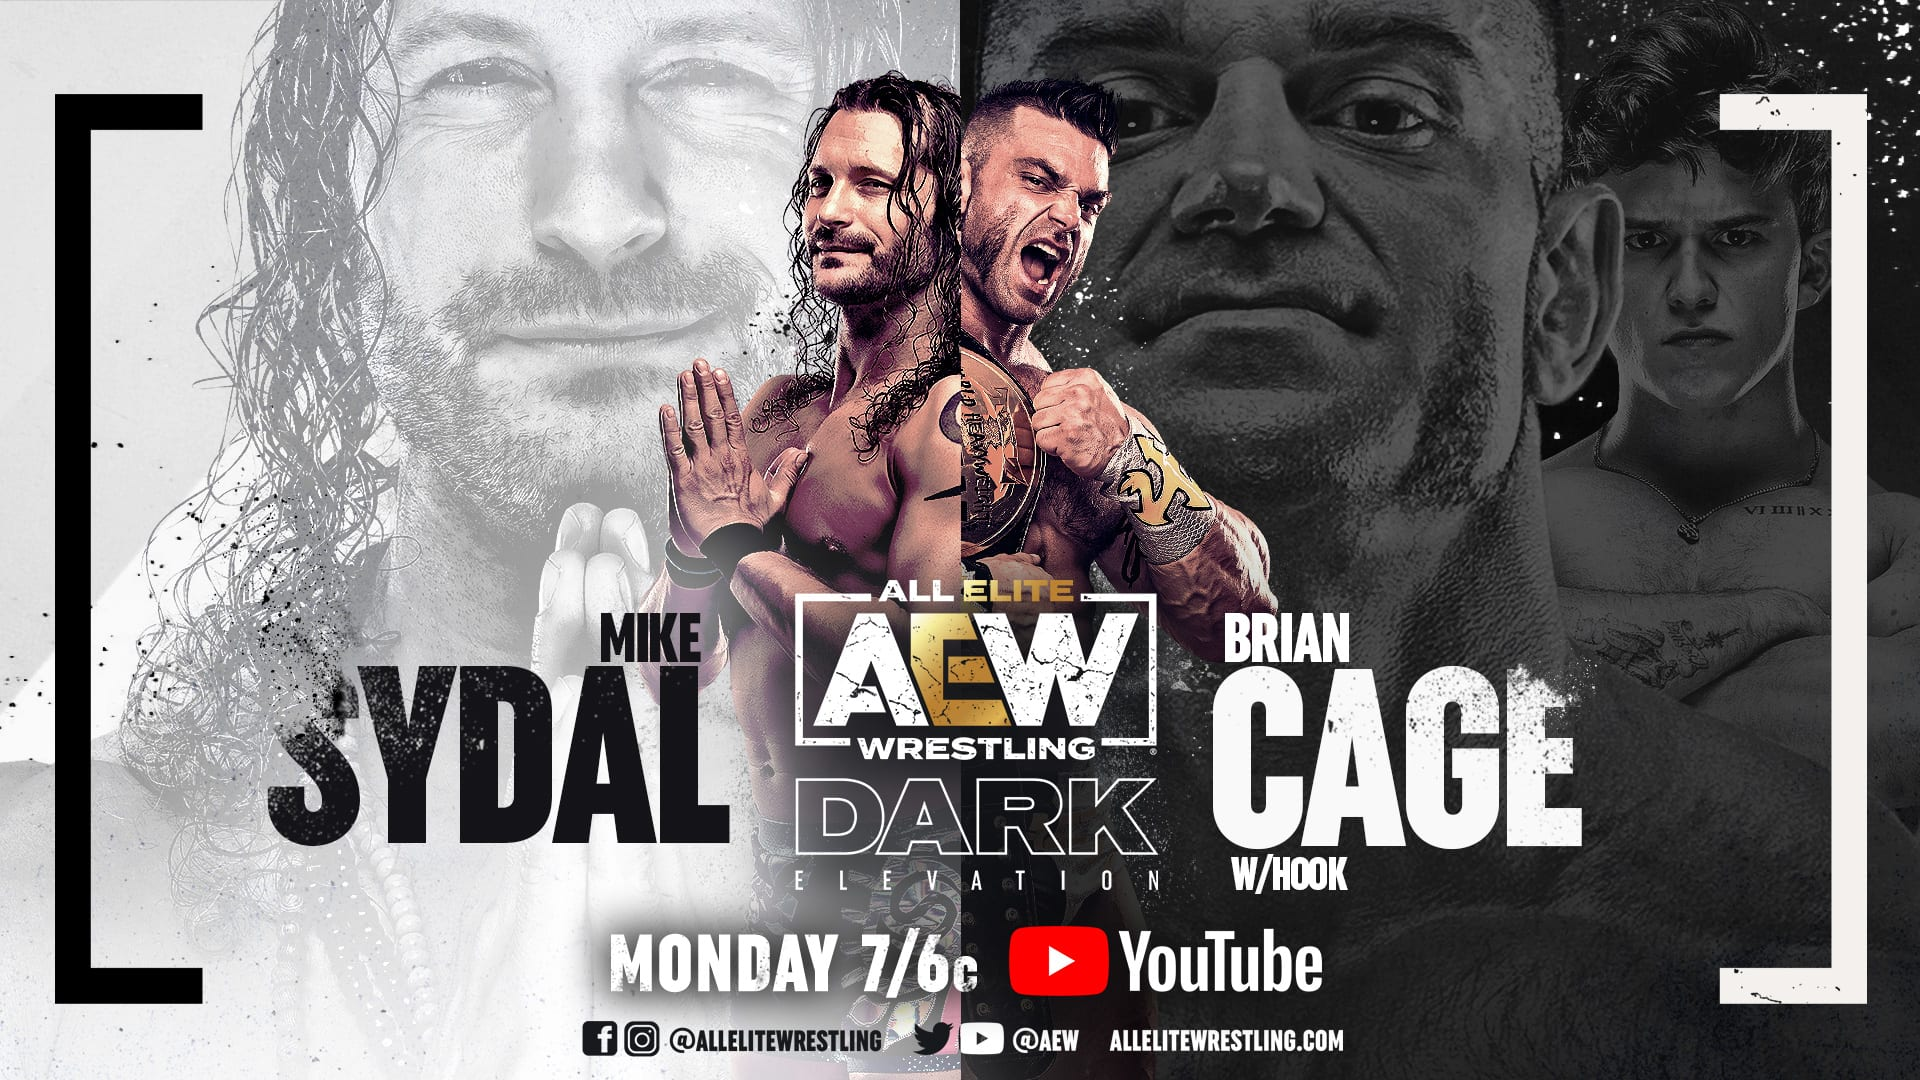 AEW Dark: Elevation Results (5/17): Brian Cage, Thunder Rosa, Jungle Boy In Action